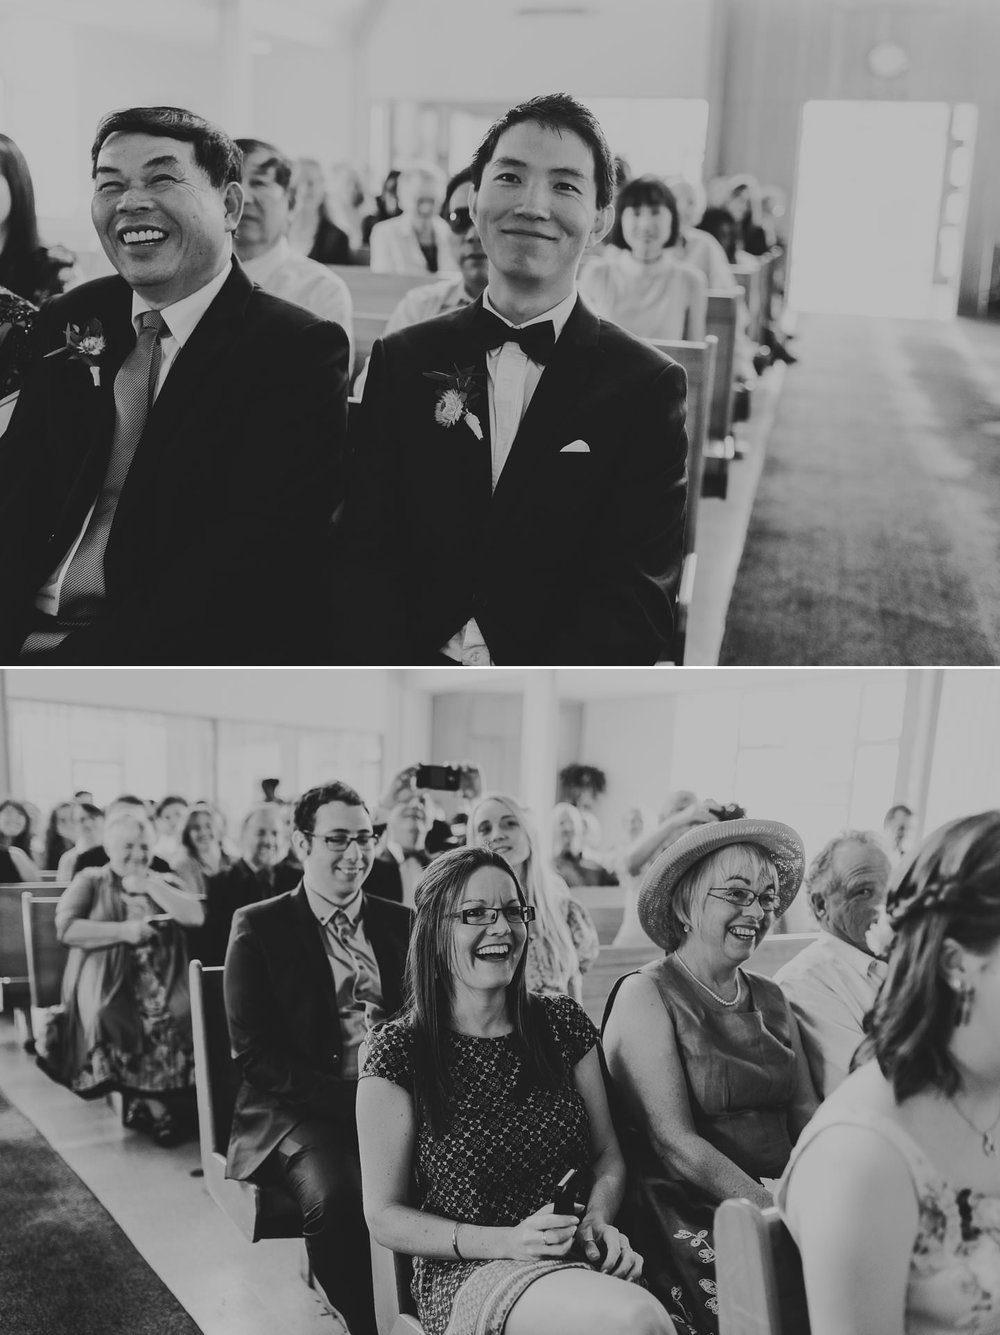 Documentary photos of guests reactions during wedding ceremony